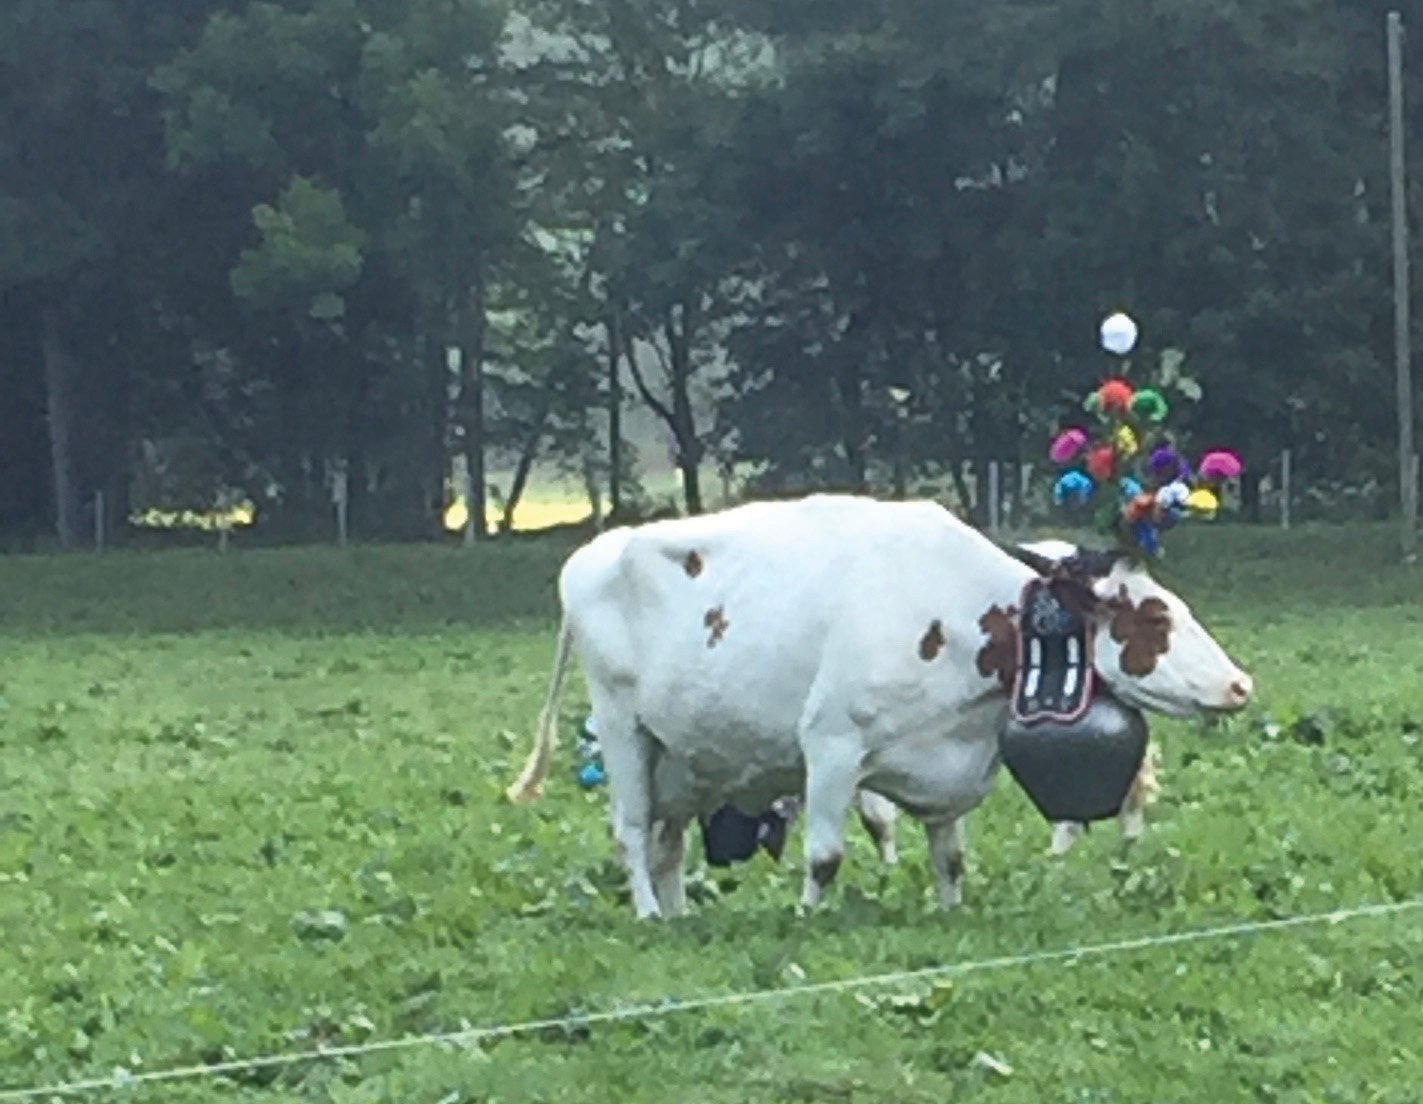 All dressed up and nowhere to go but down from the Alps to greener pastures for winter. A flower-bedecked cow gets ready for the annual Desalpes celebration near Charmey.